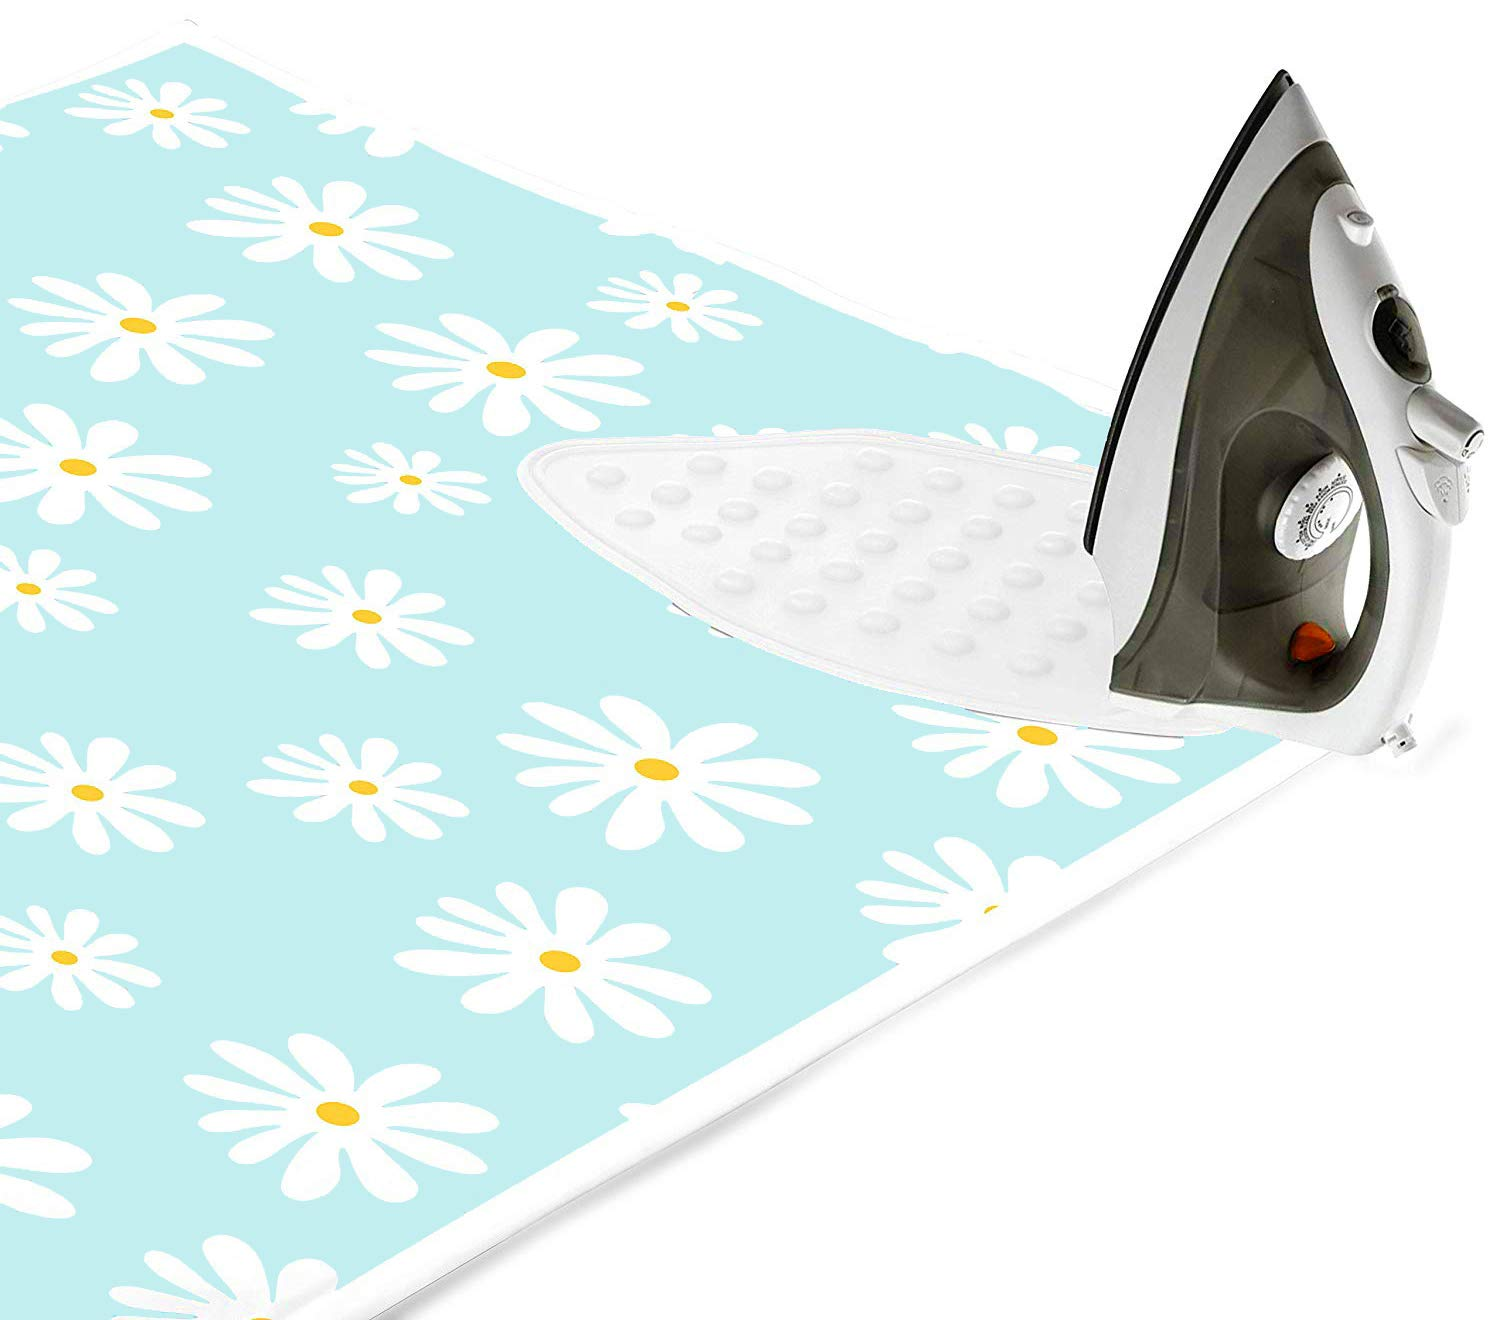 Encasa Homes Ironing Mat/Pad (Large 47 x 28 inch) with 3mm Padding & Silicone Iron Rest for Steam Pressing on Tabletop or Bed - Heat Resistant, Portable, Quilting & Travel Blanket - Daisy Blue